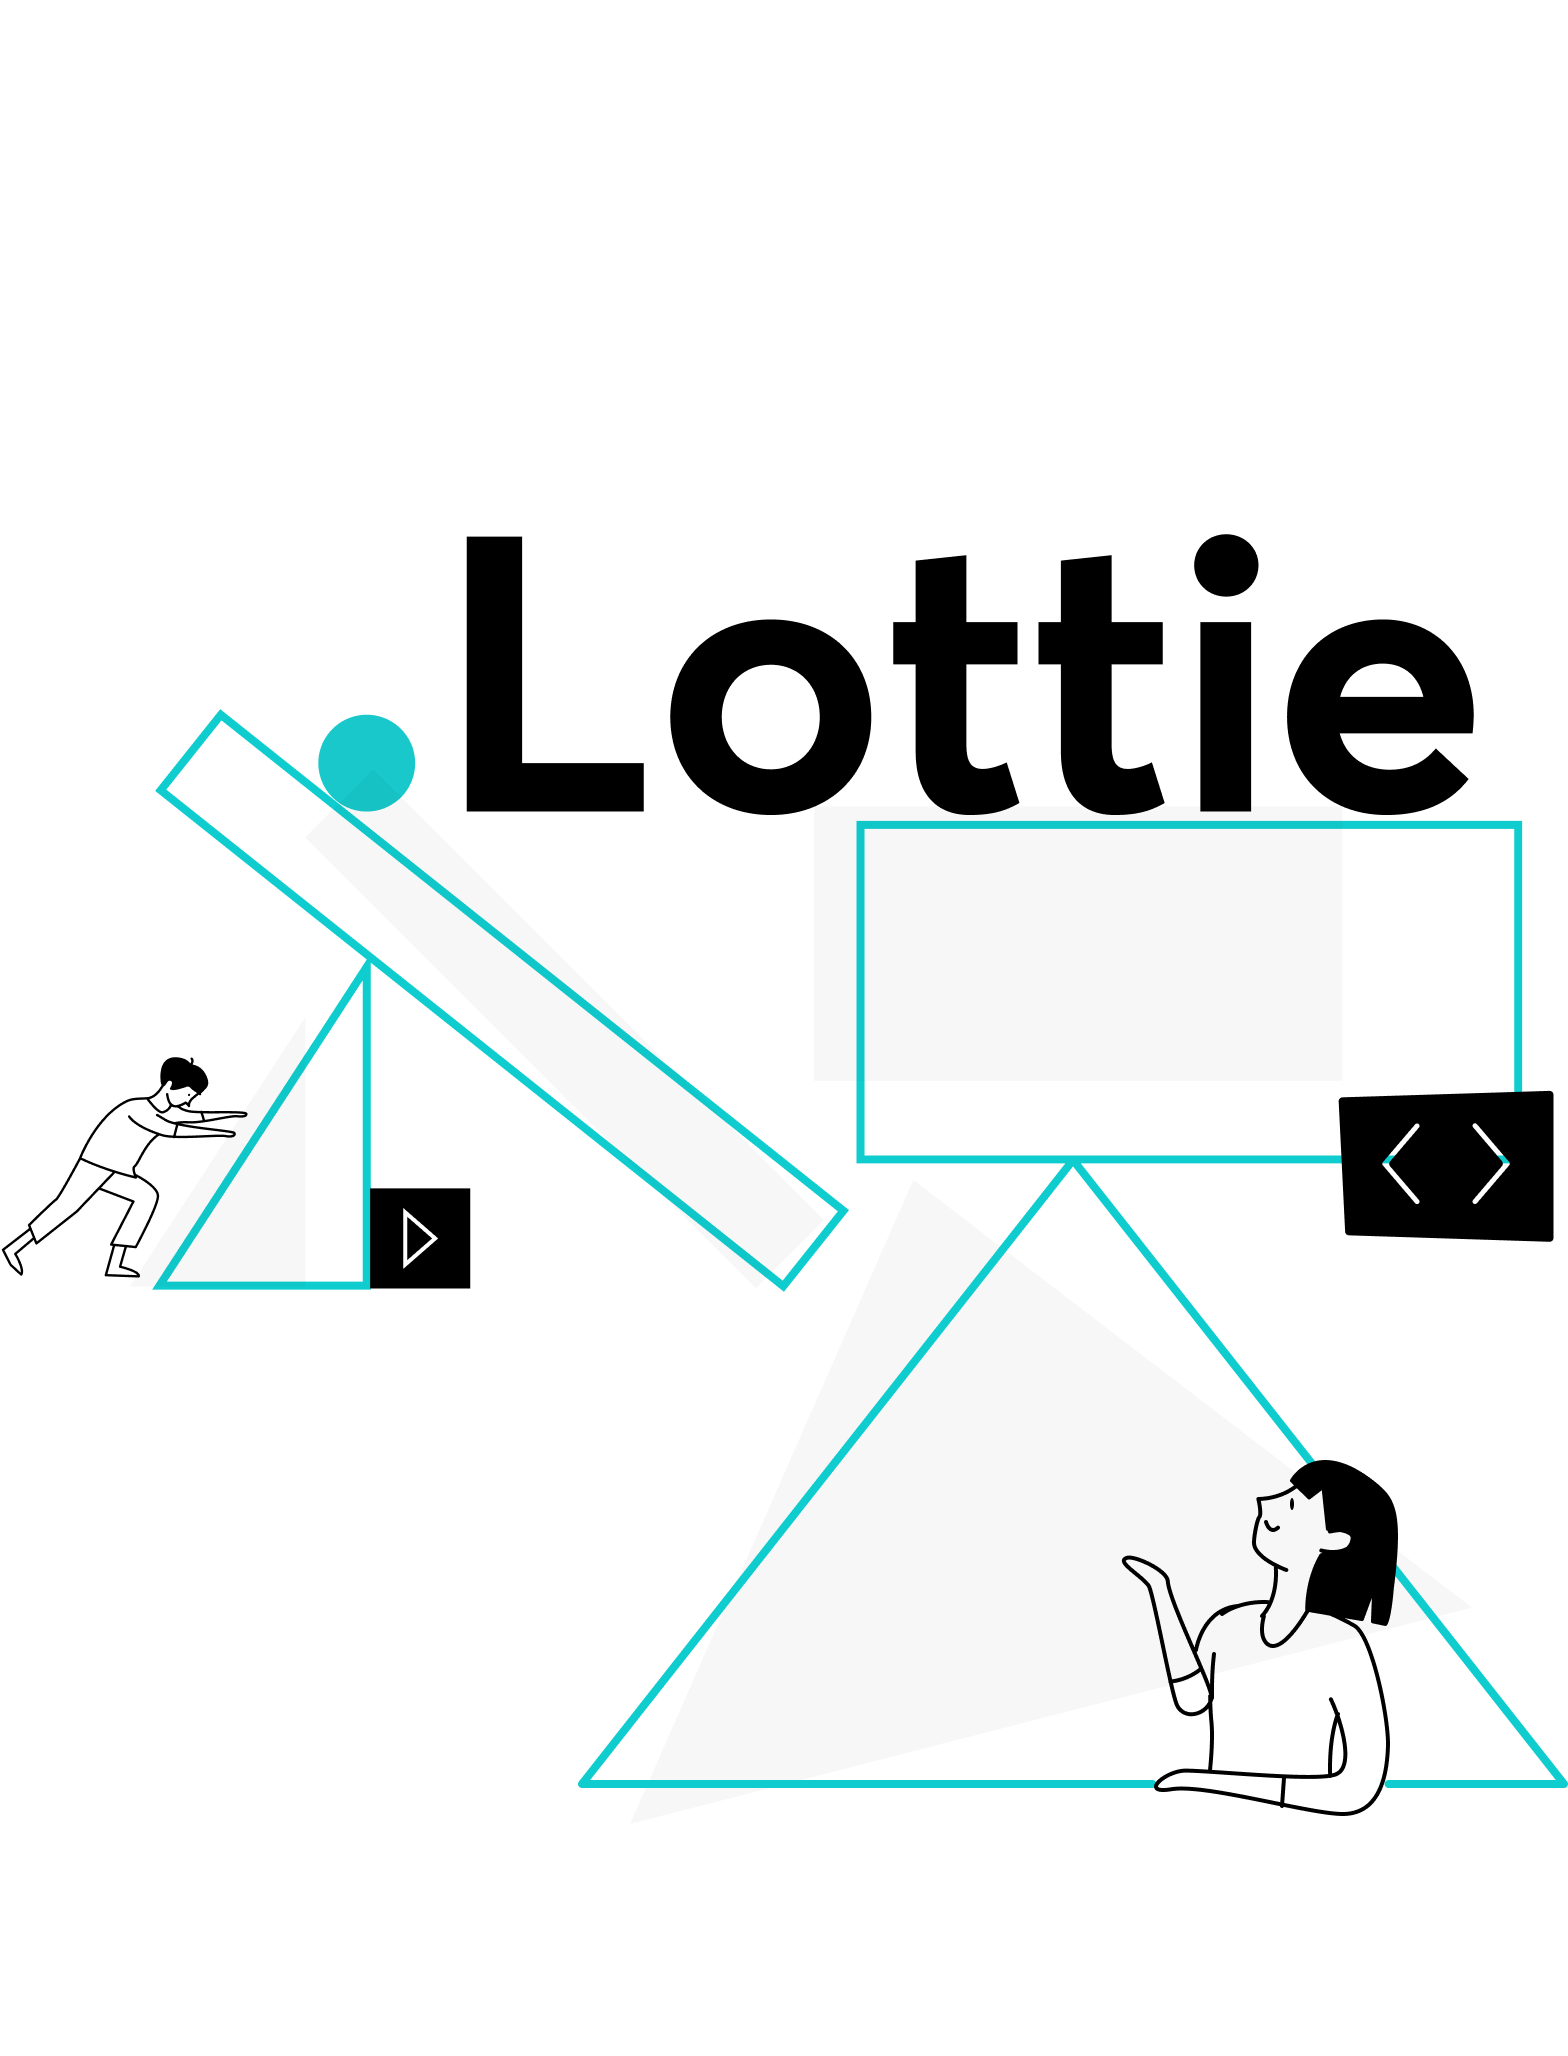 Introducing dotLottie: a new file format